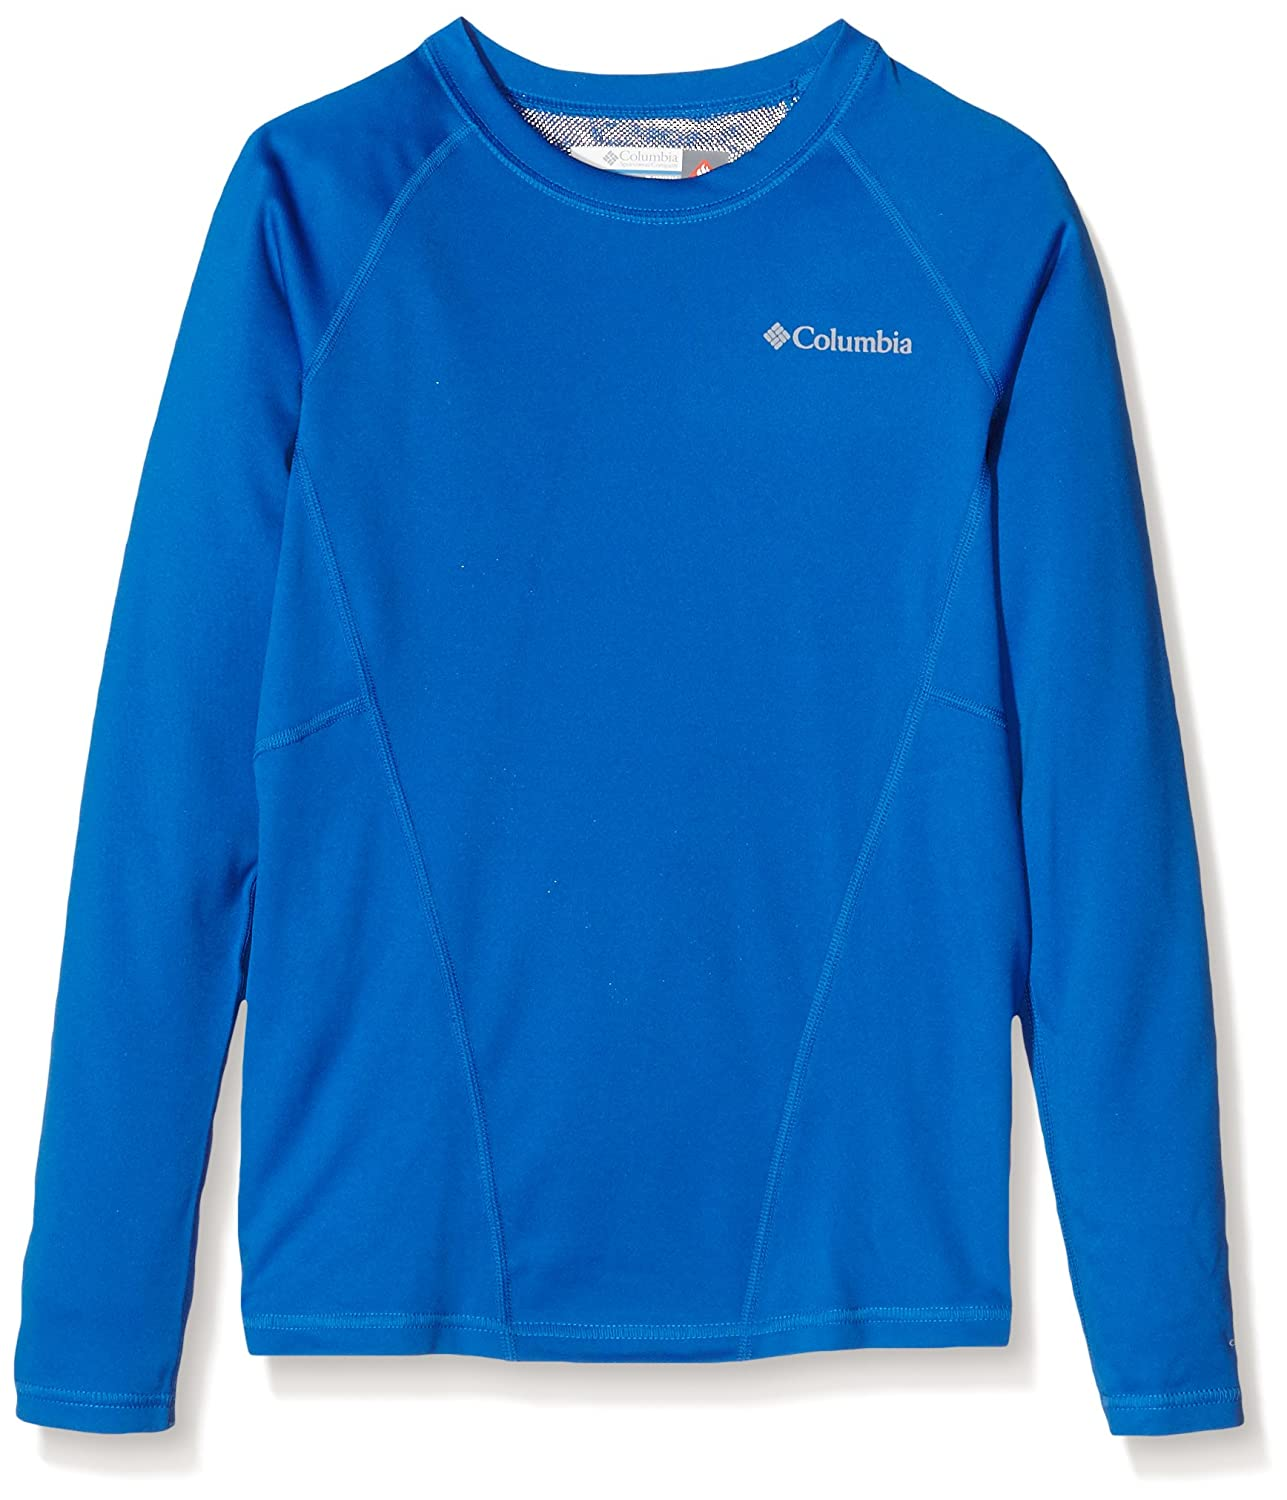 Columbia Unisex-Child Midweight Crew 2 Thermal Tops